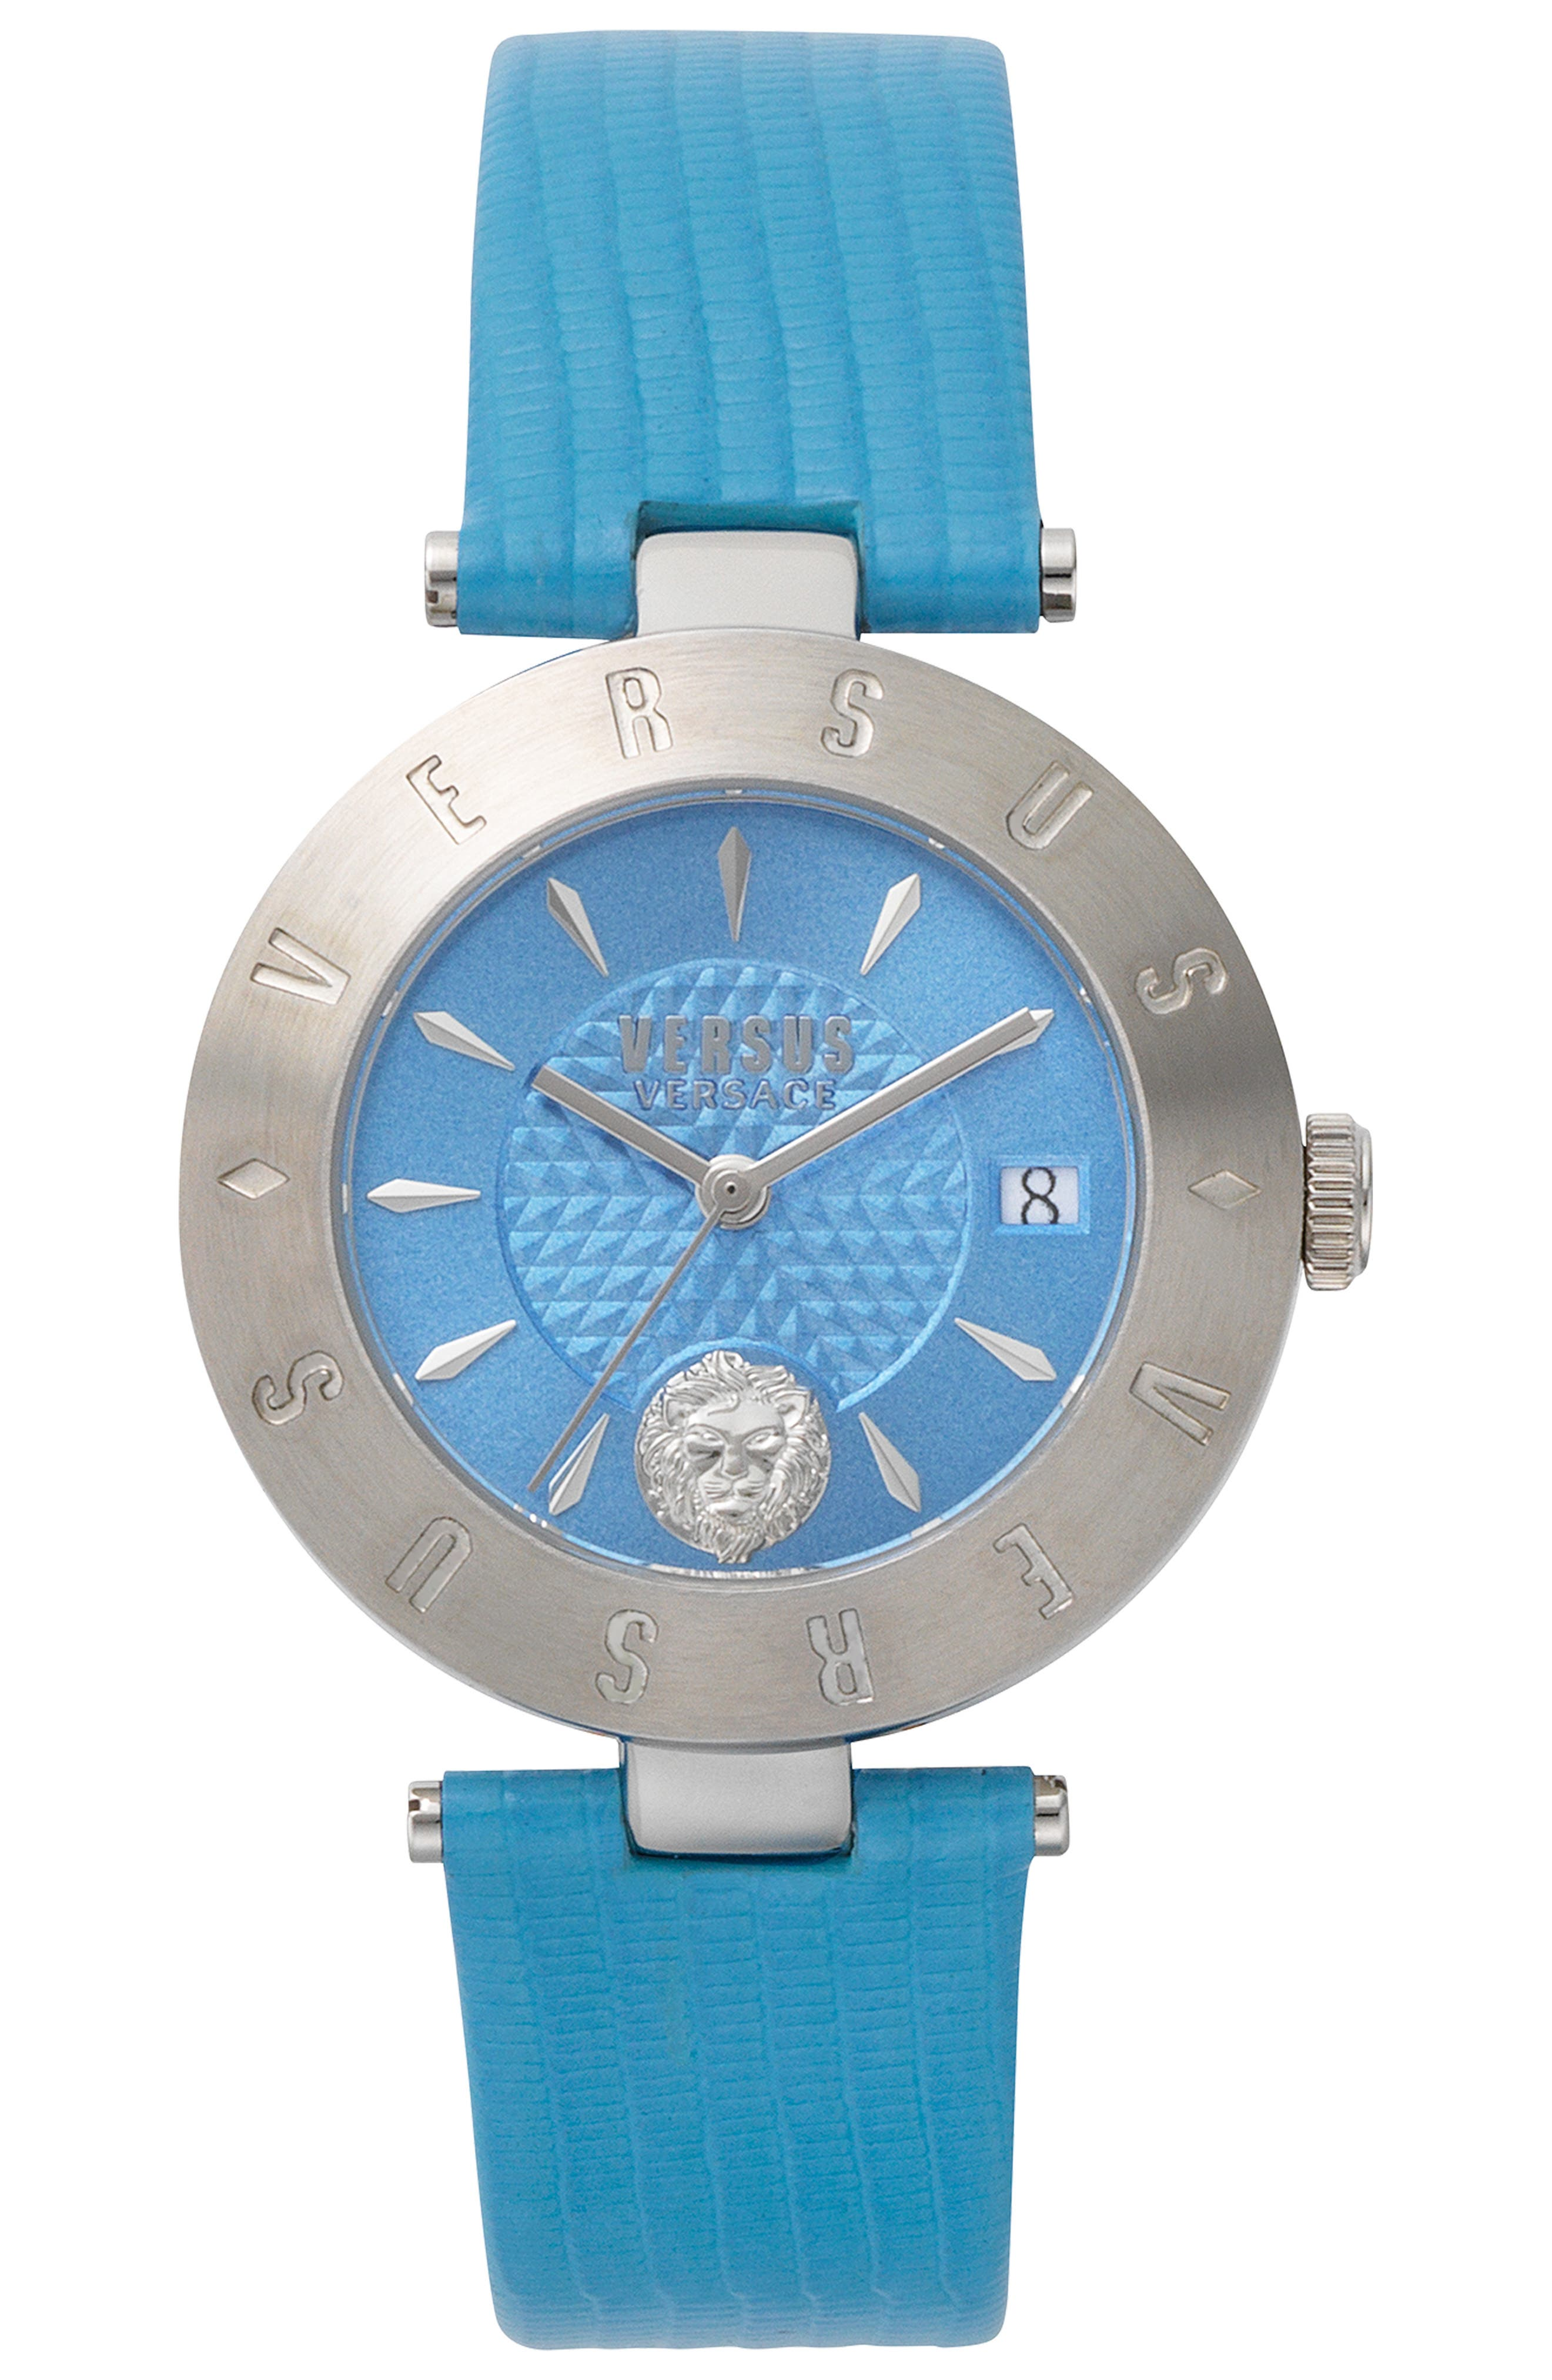 VERSUS VERSACE, Logo Leather Strap Watch, 34mm, Main thumbnail 1, color, BLUE/ SILVER